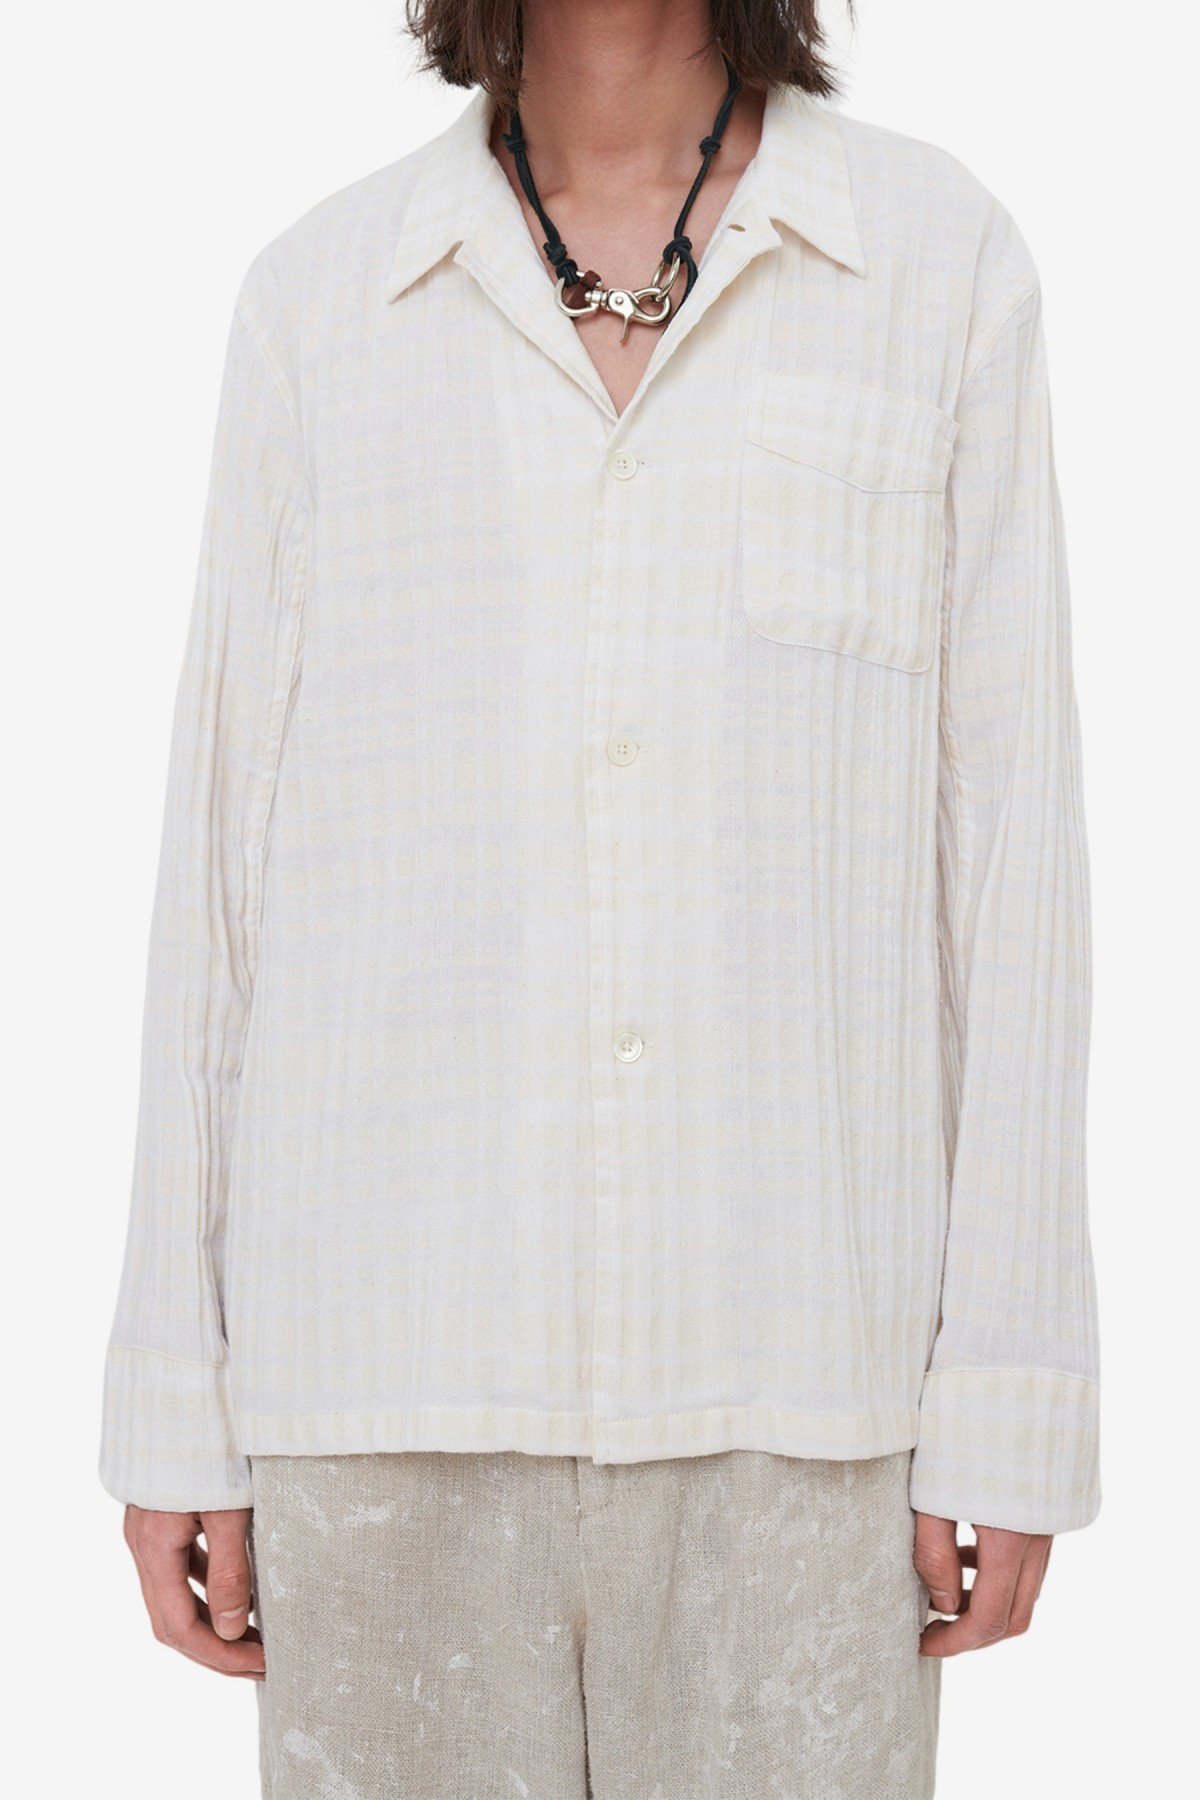 Our Legacy Box Shirt in White/Beige Check